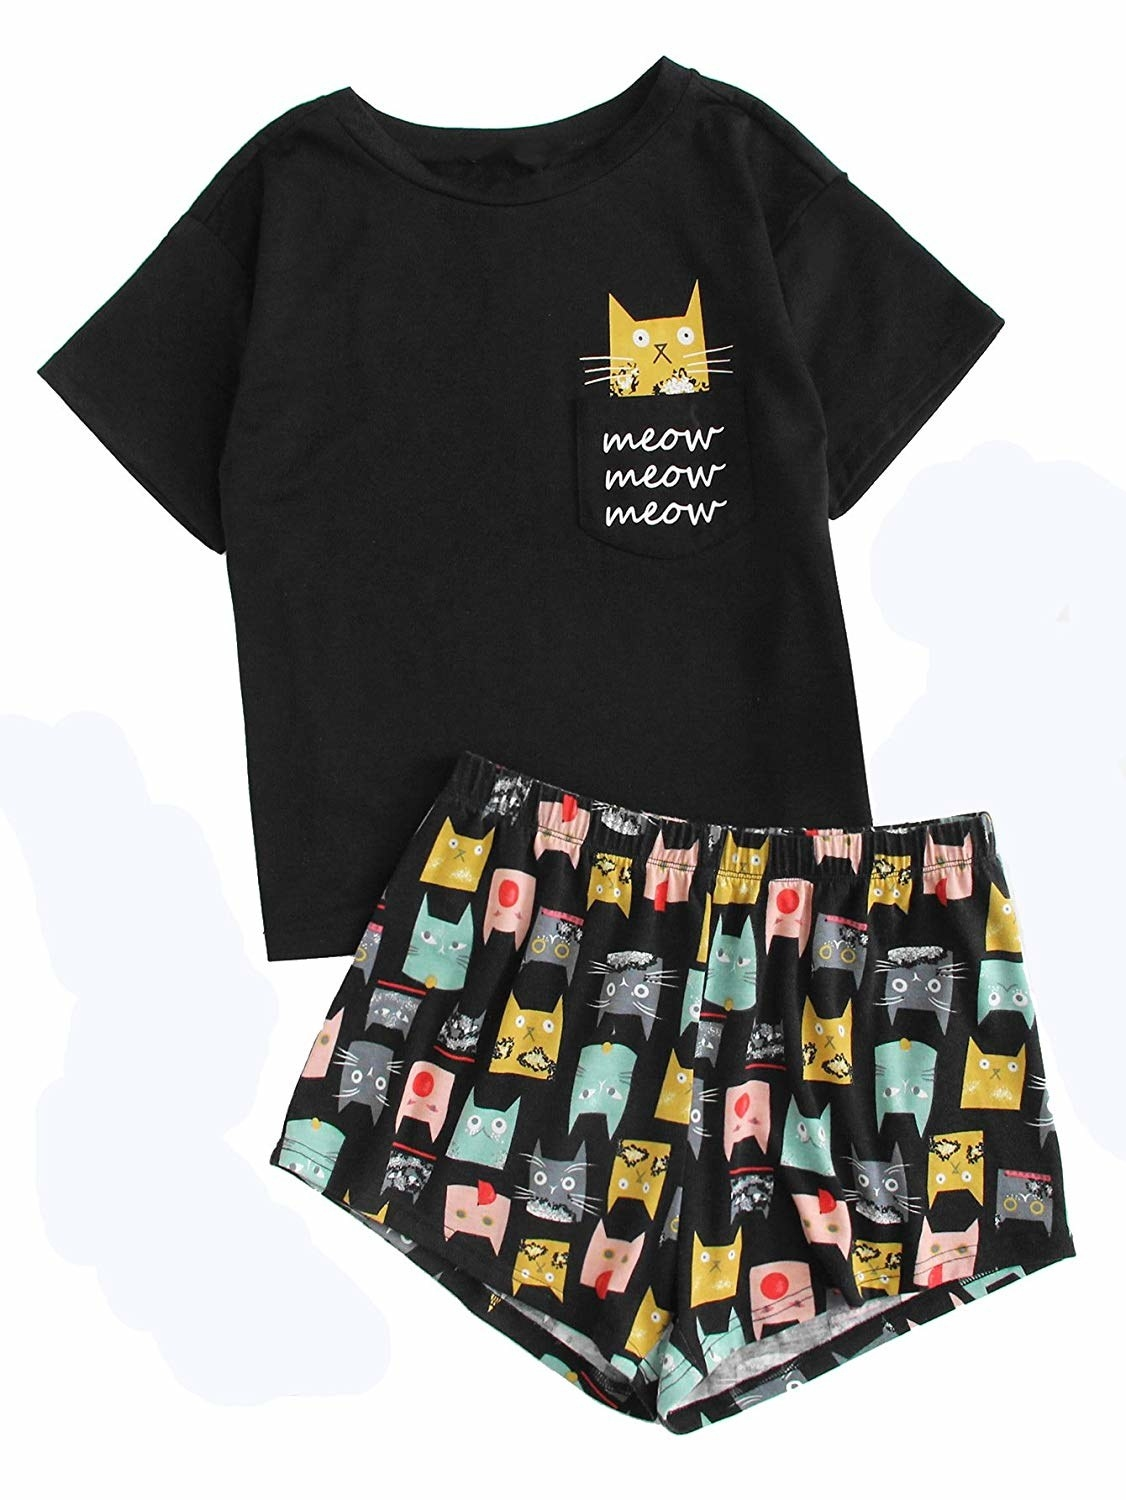 1c74a1423f519 Some unbelievably adorable PJs that are the cat s pajamas and so cute it s  bananas. They come in tons of other aww-worthy designs